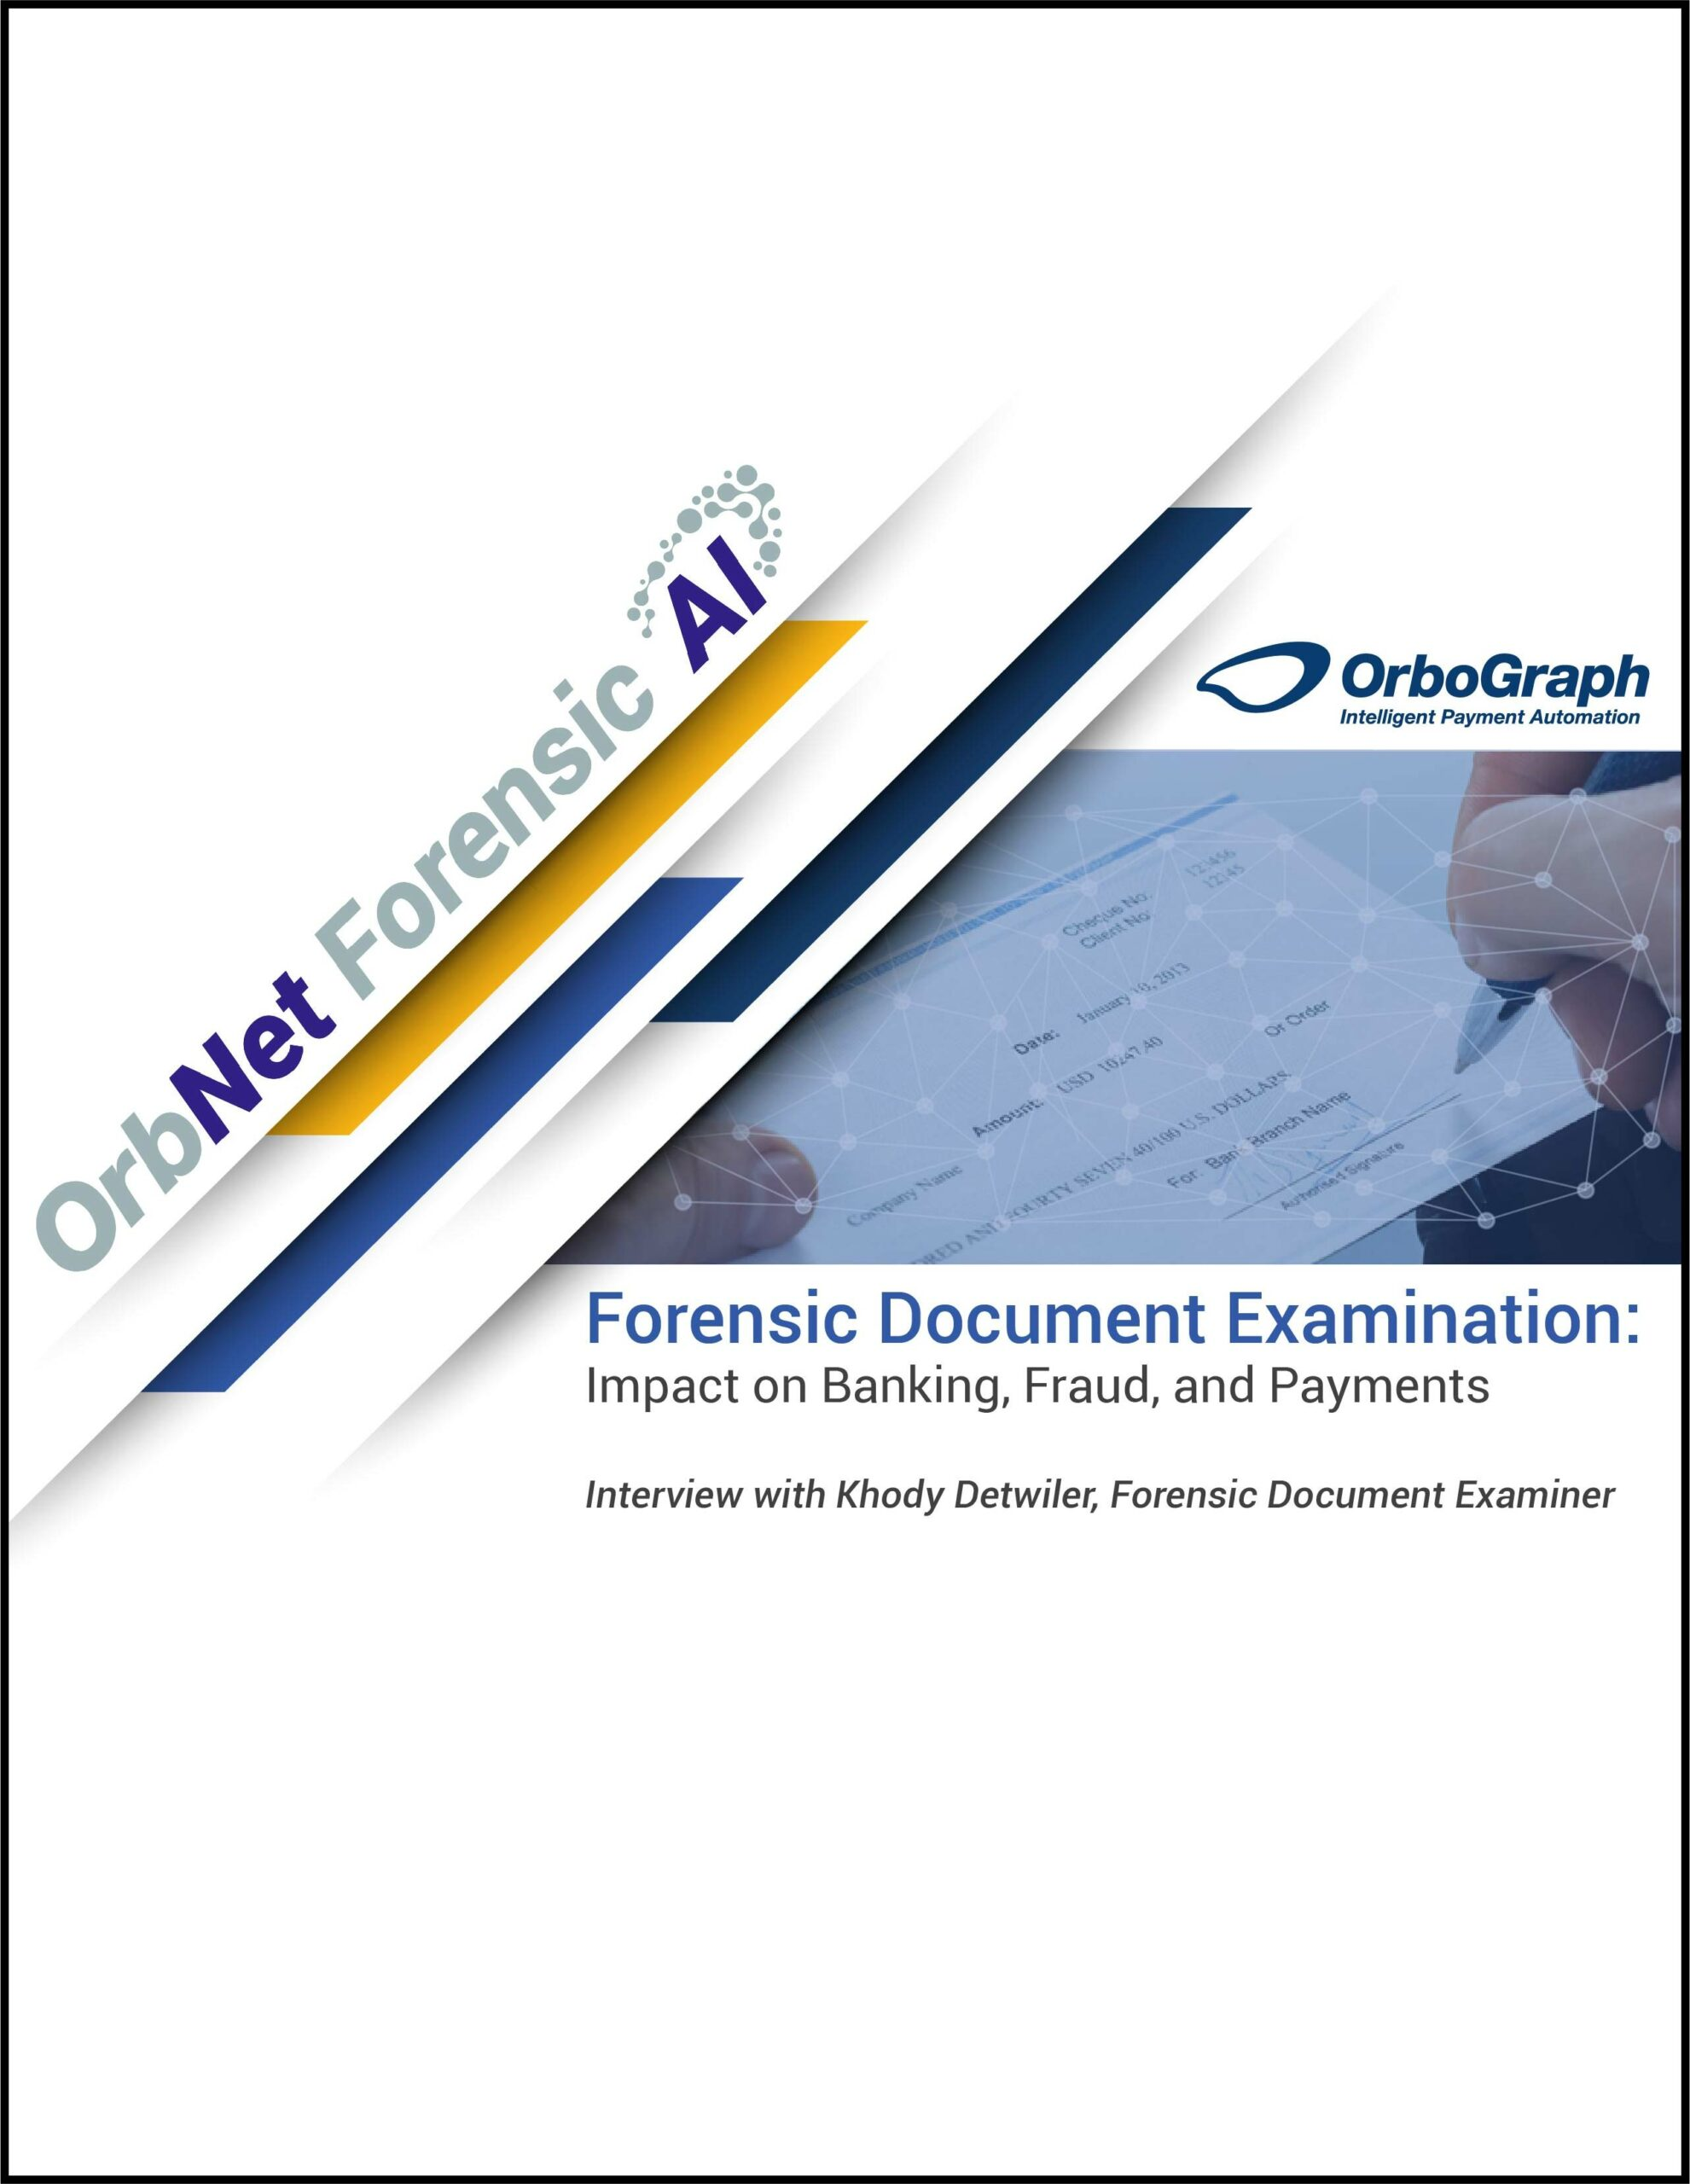 Forensic_Document_Examination_Cover-02